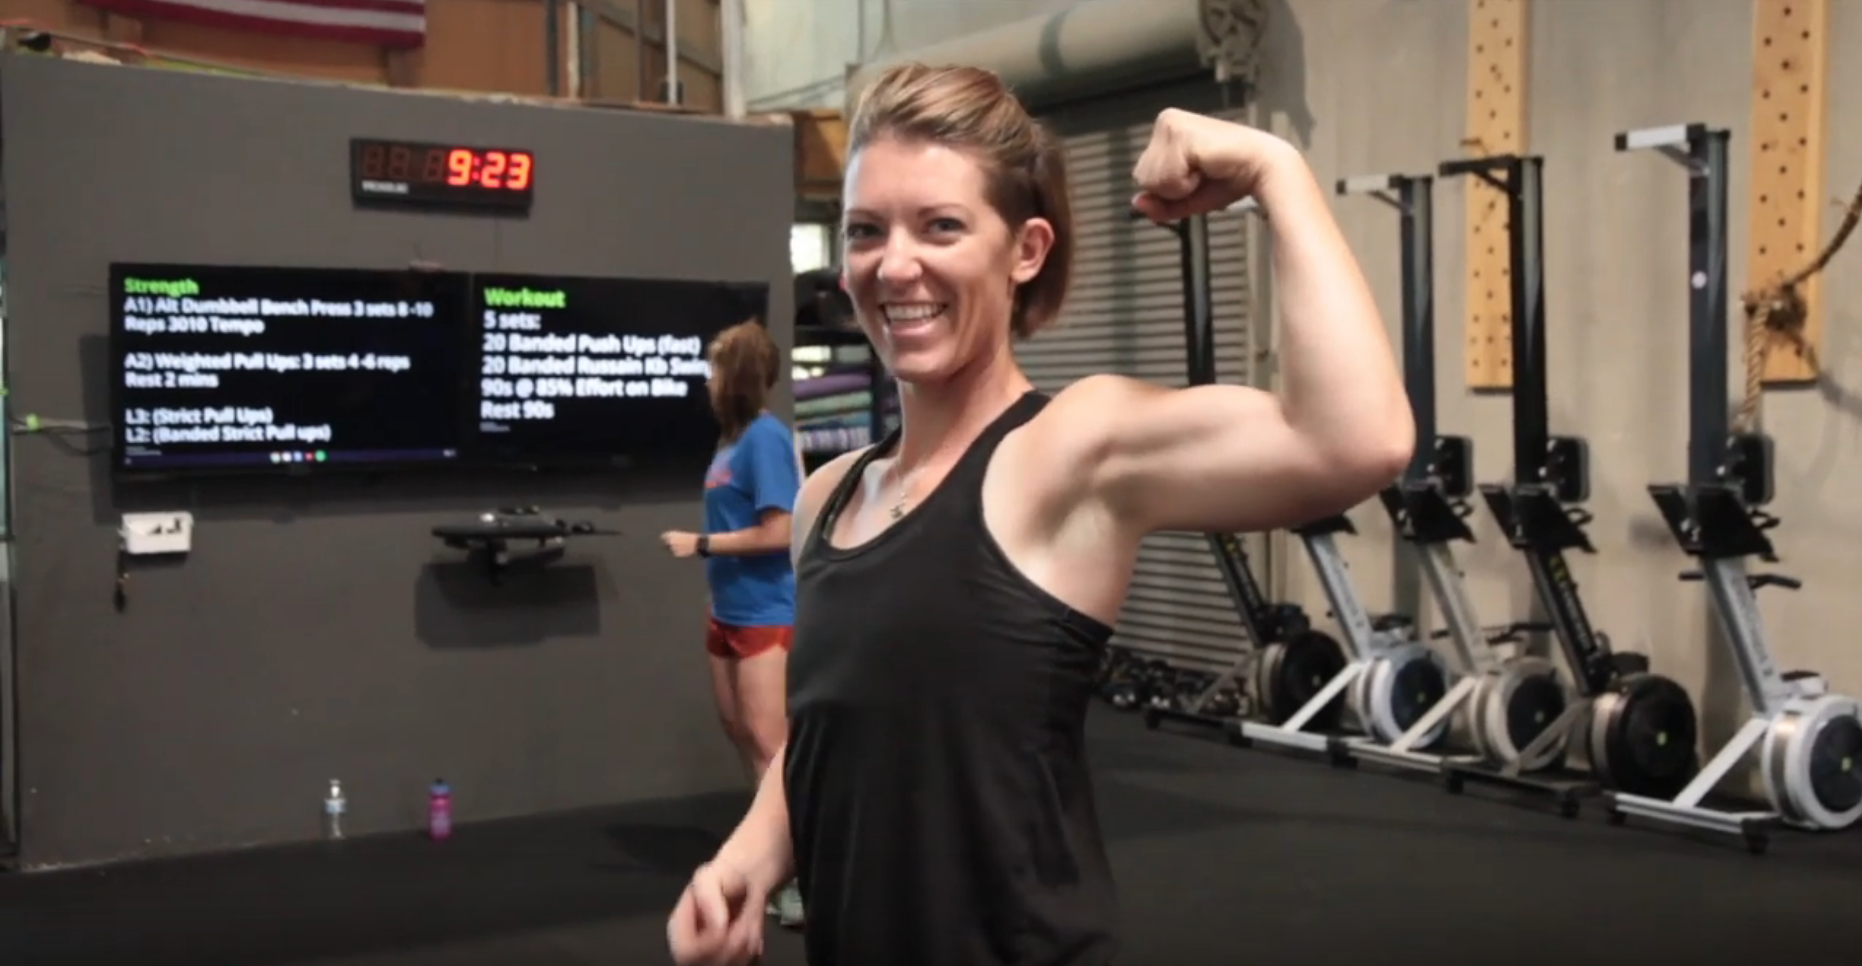 Ilene    Illene has had such an amazing transformation both physically and mentally. Her commitment and positive attitude are contagious! Watch her story here!    Read More…